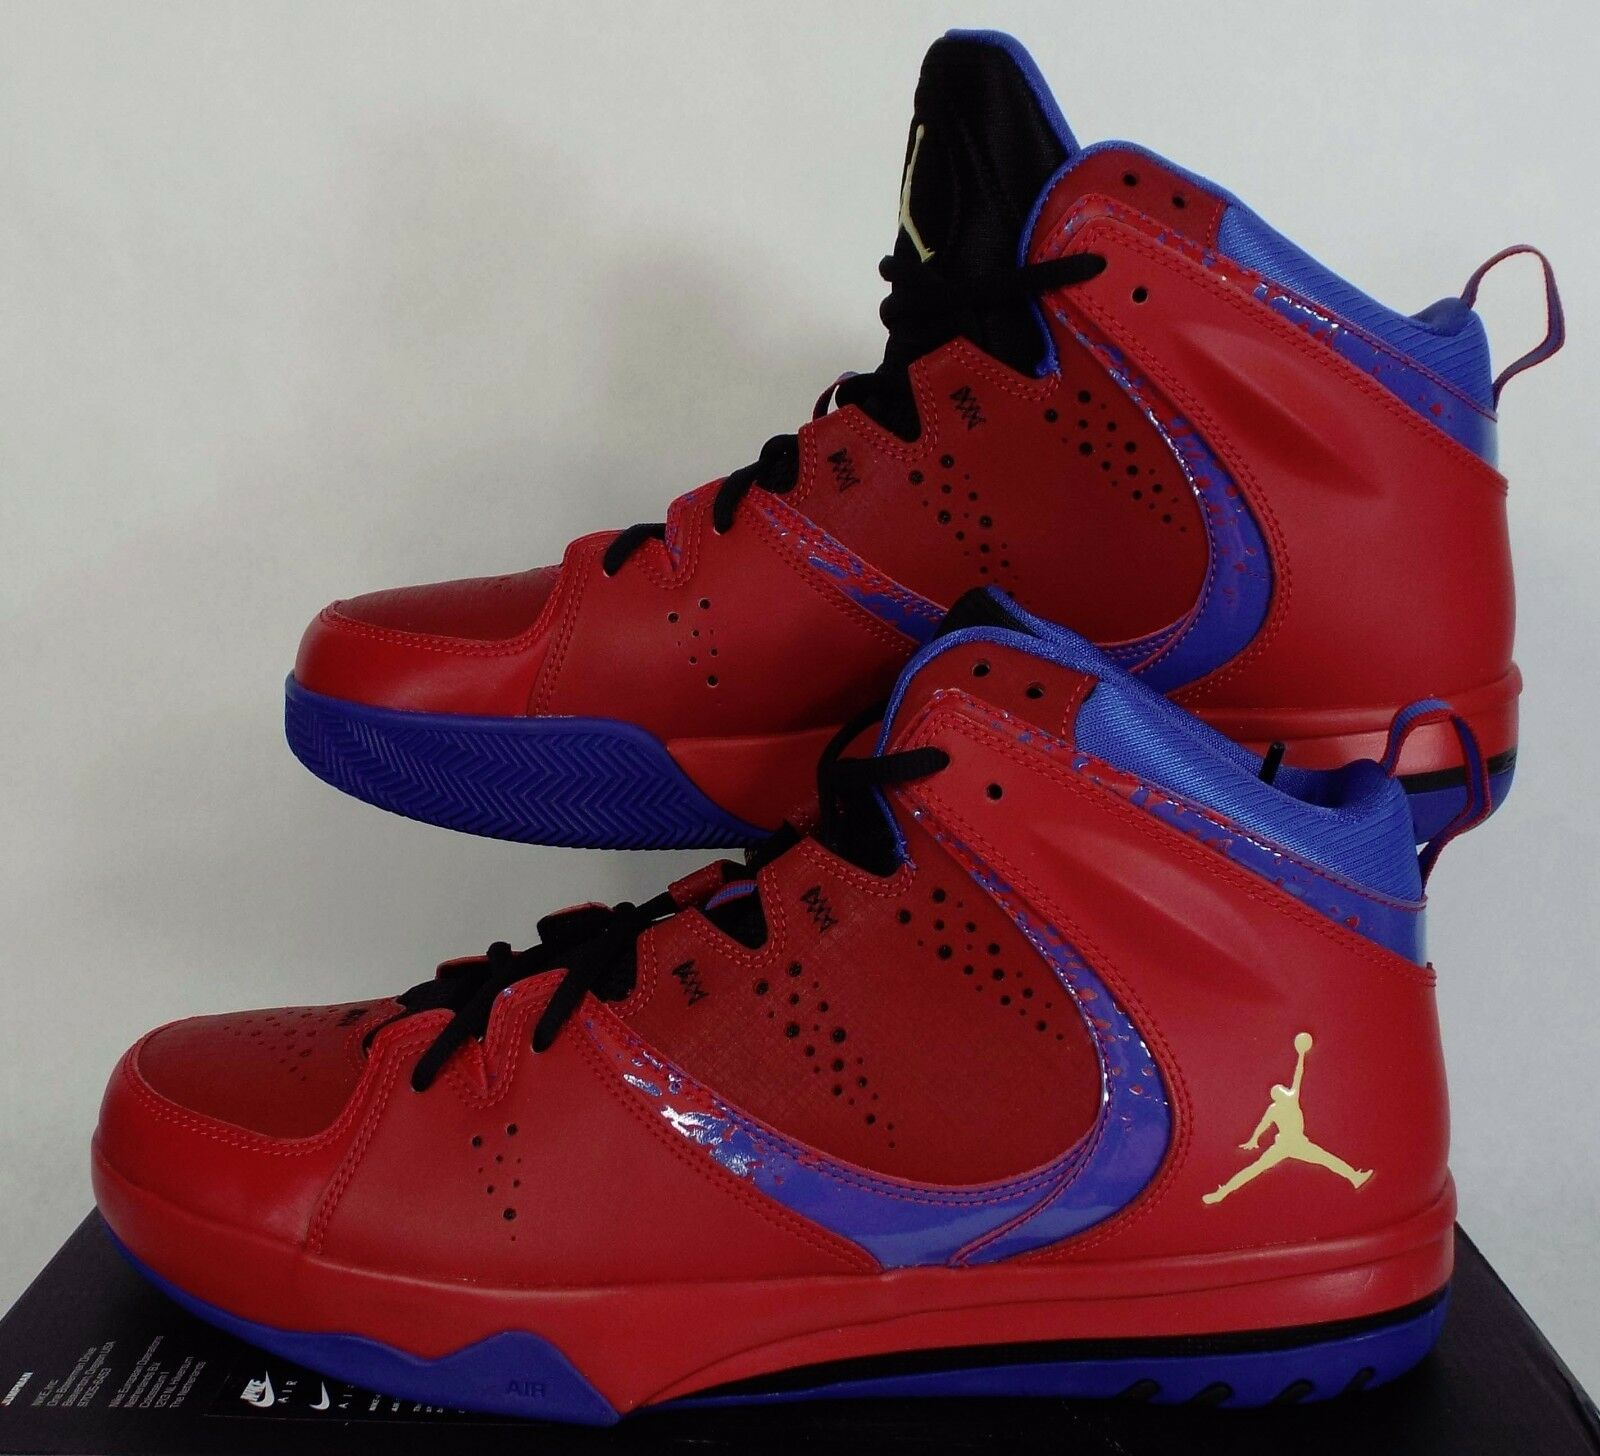 New Mens 13 NIKE Jordan Phase 23 2 Red Basketball Shoes 115 602671-607